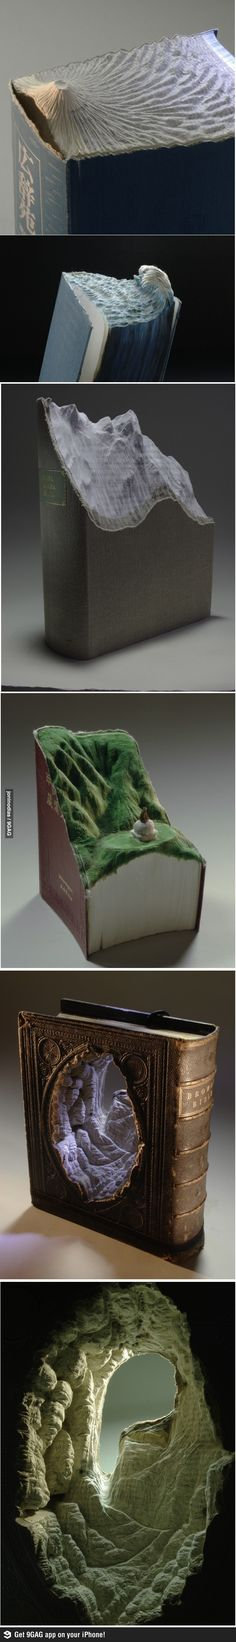 Landscapes carved on books = Amazing!